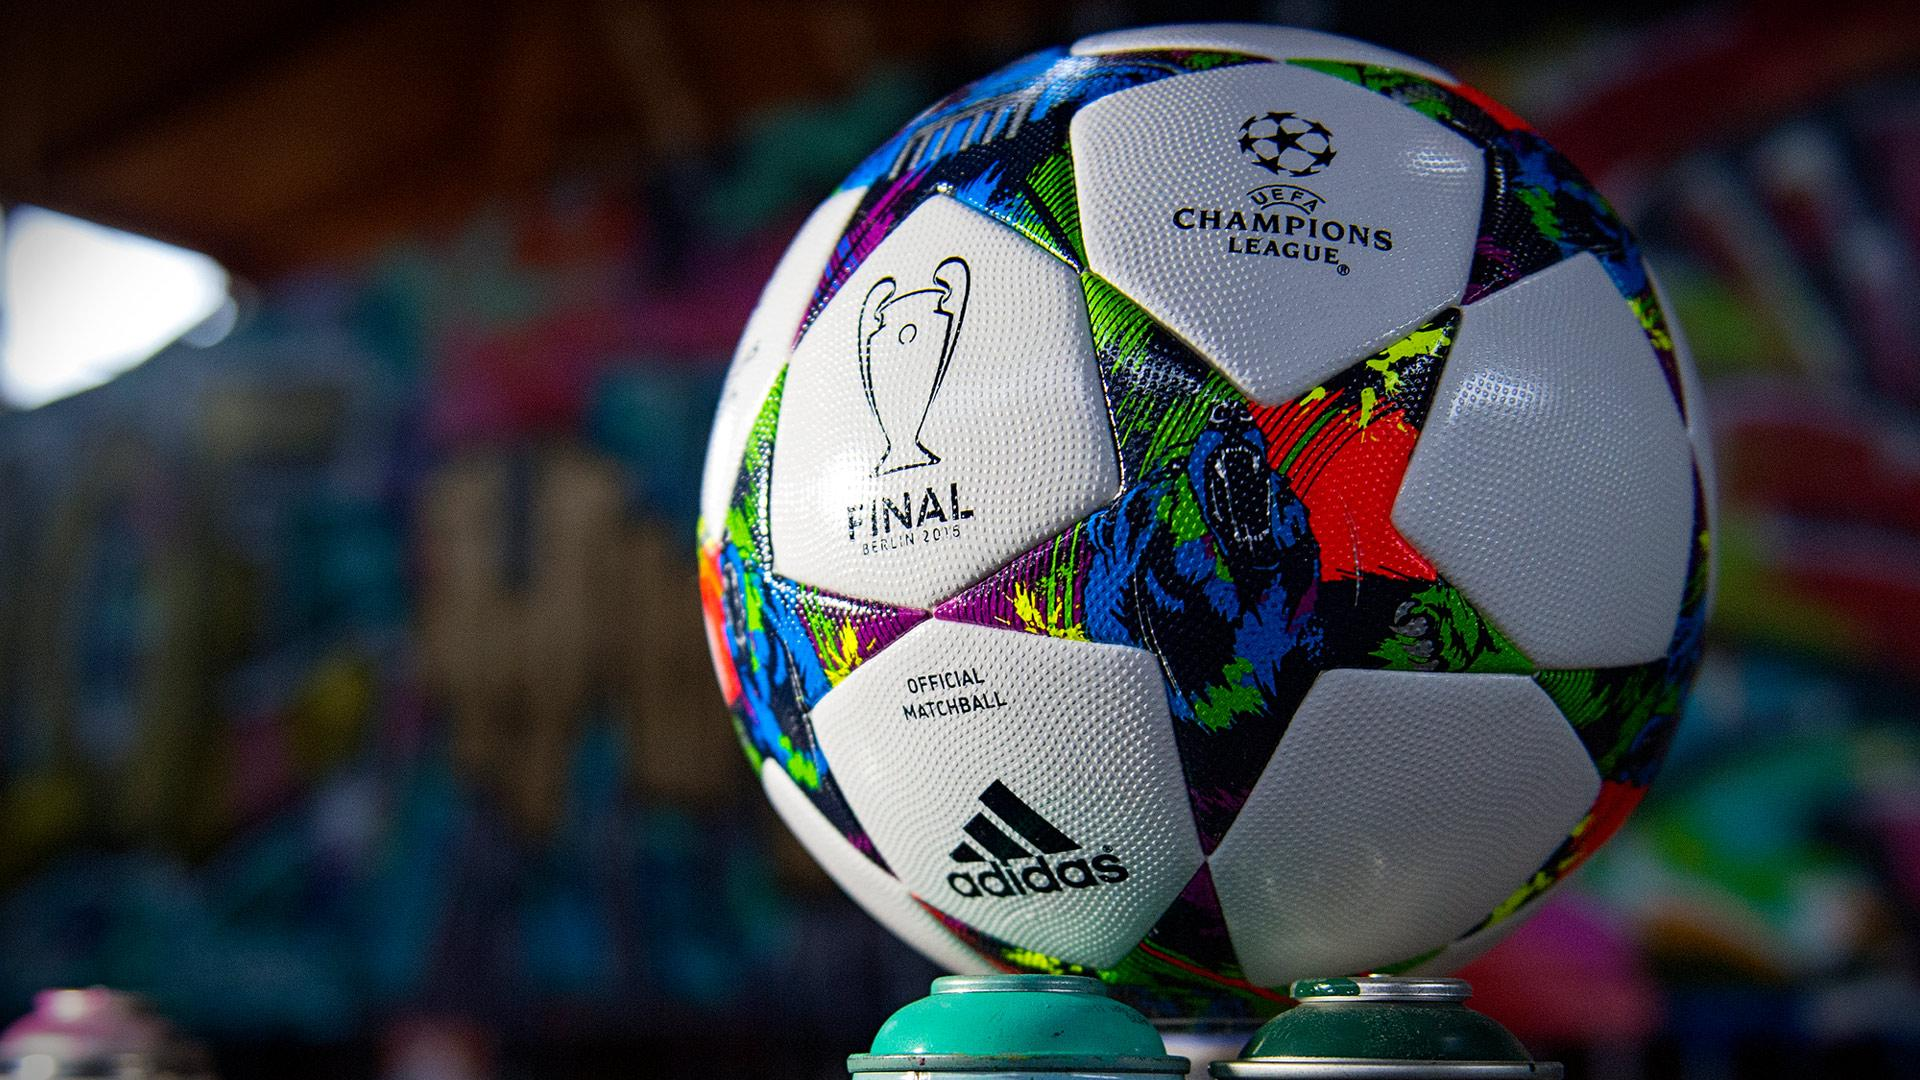 46+] UEFA Champions League Wallpapers HD